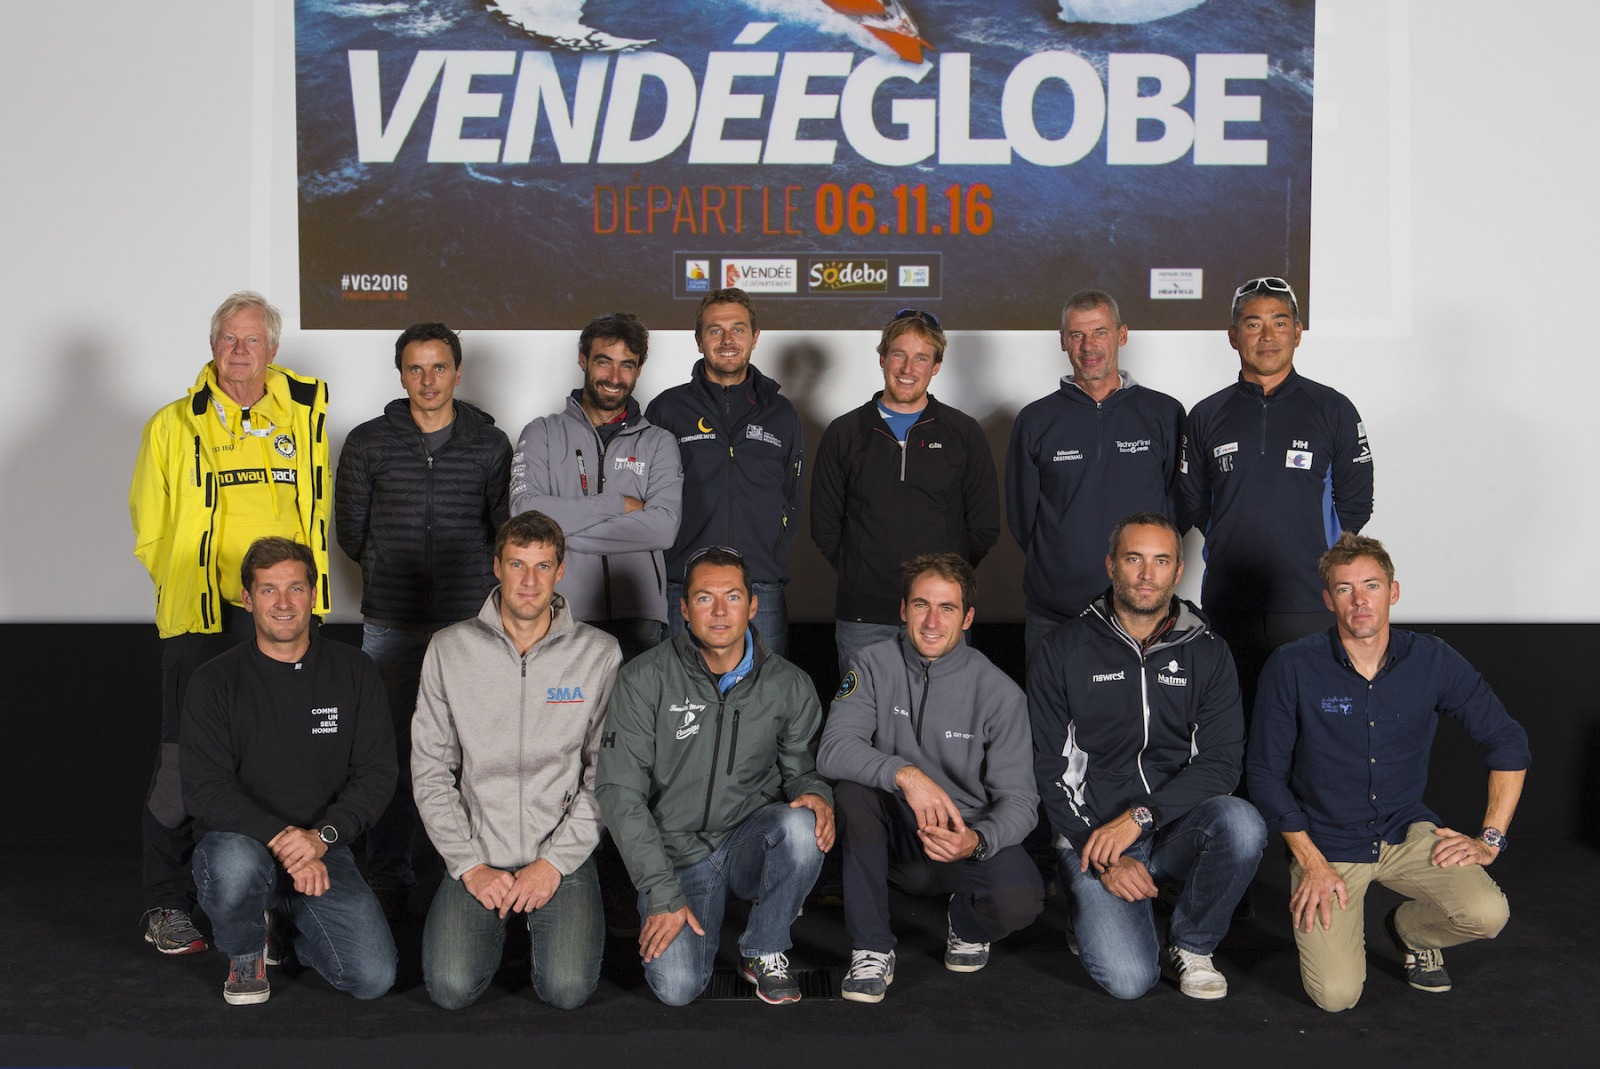 A few of the 29 skippers in the line up for the 2016 Vendee Globe (Photo by Jean-Marie Liot/DPPI/Vendee Globe)